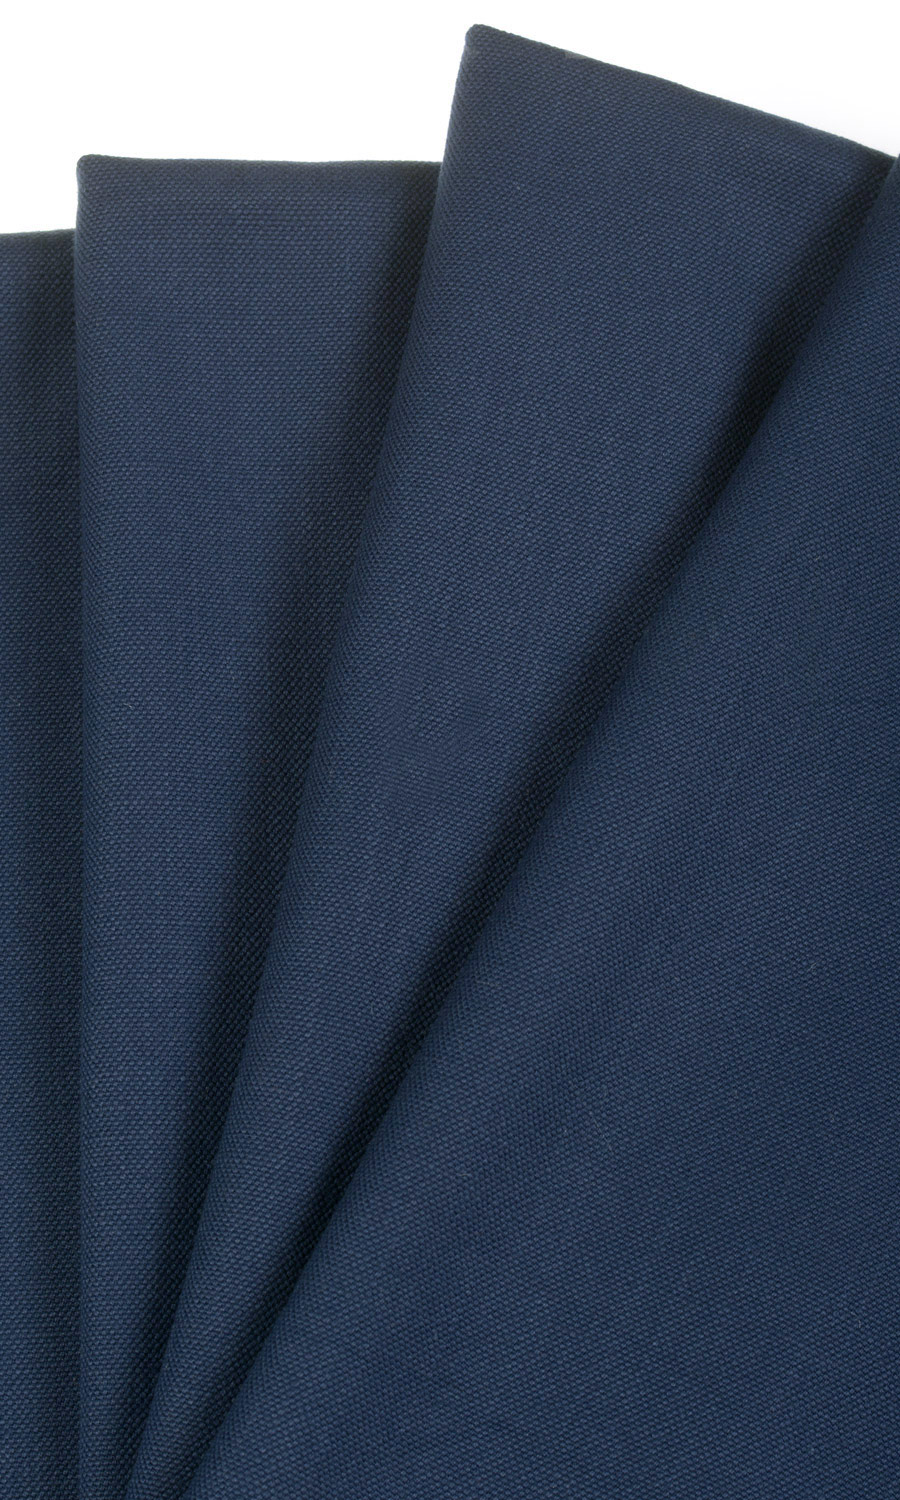 Blue Cotton Custom Drapes